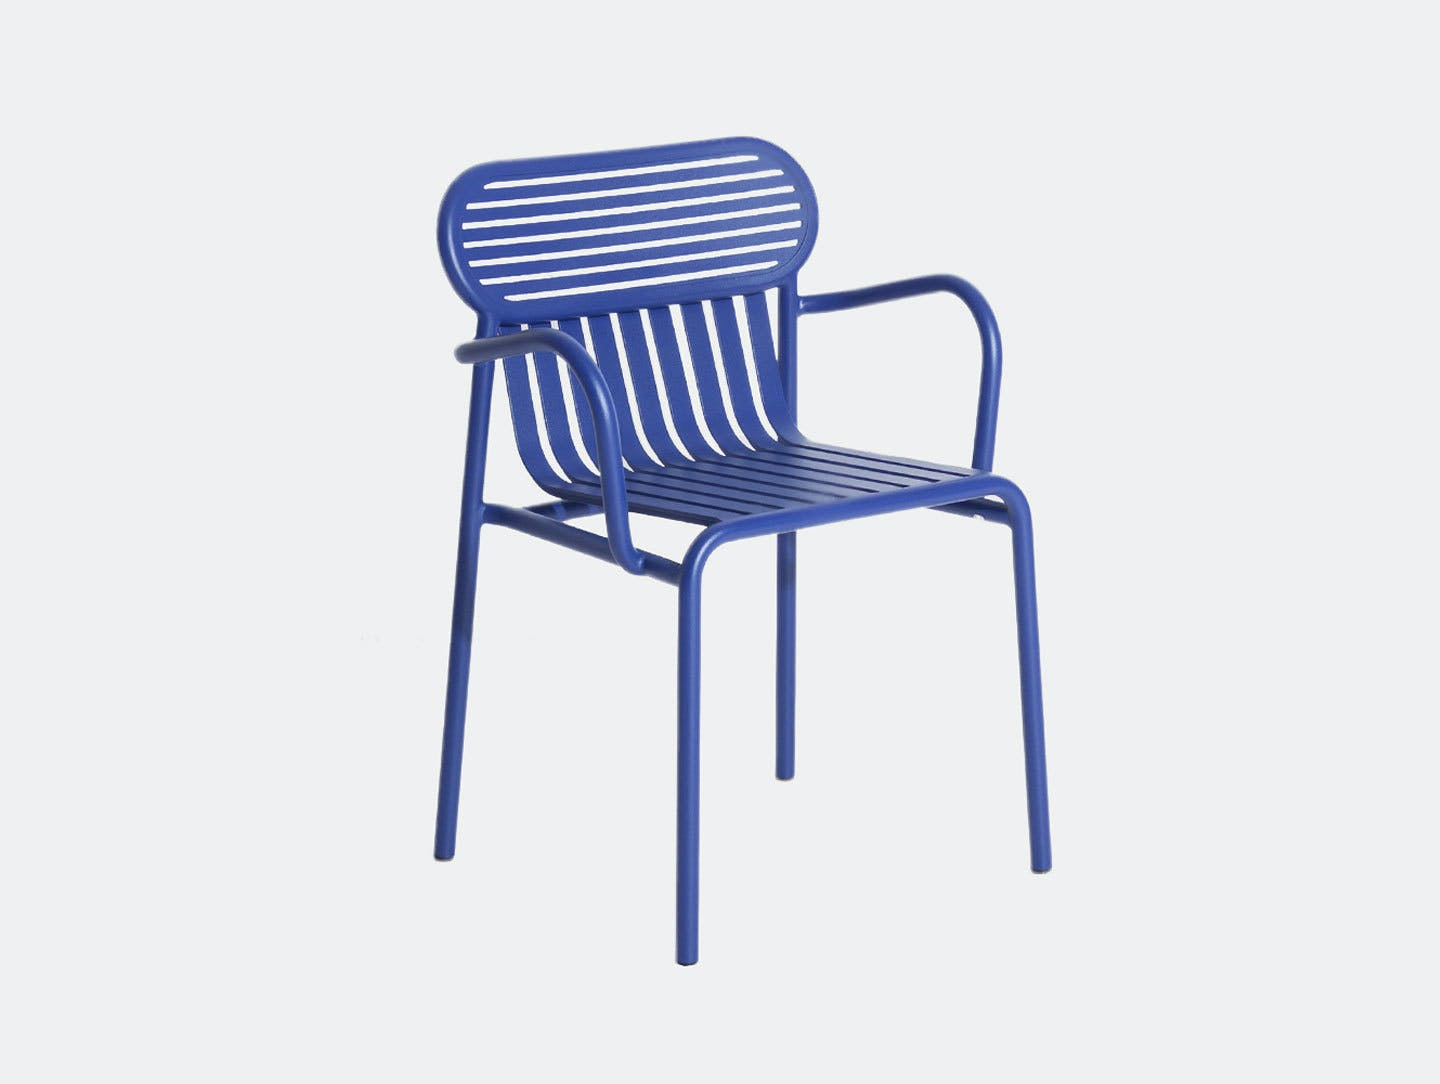 Petite Friture Week End Outdoor Armchair blue Studio Brichet Ziegler